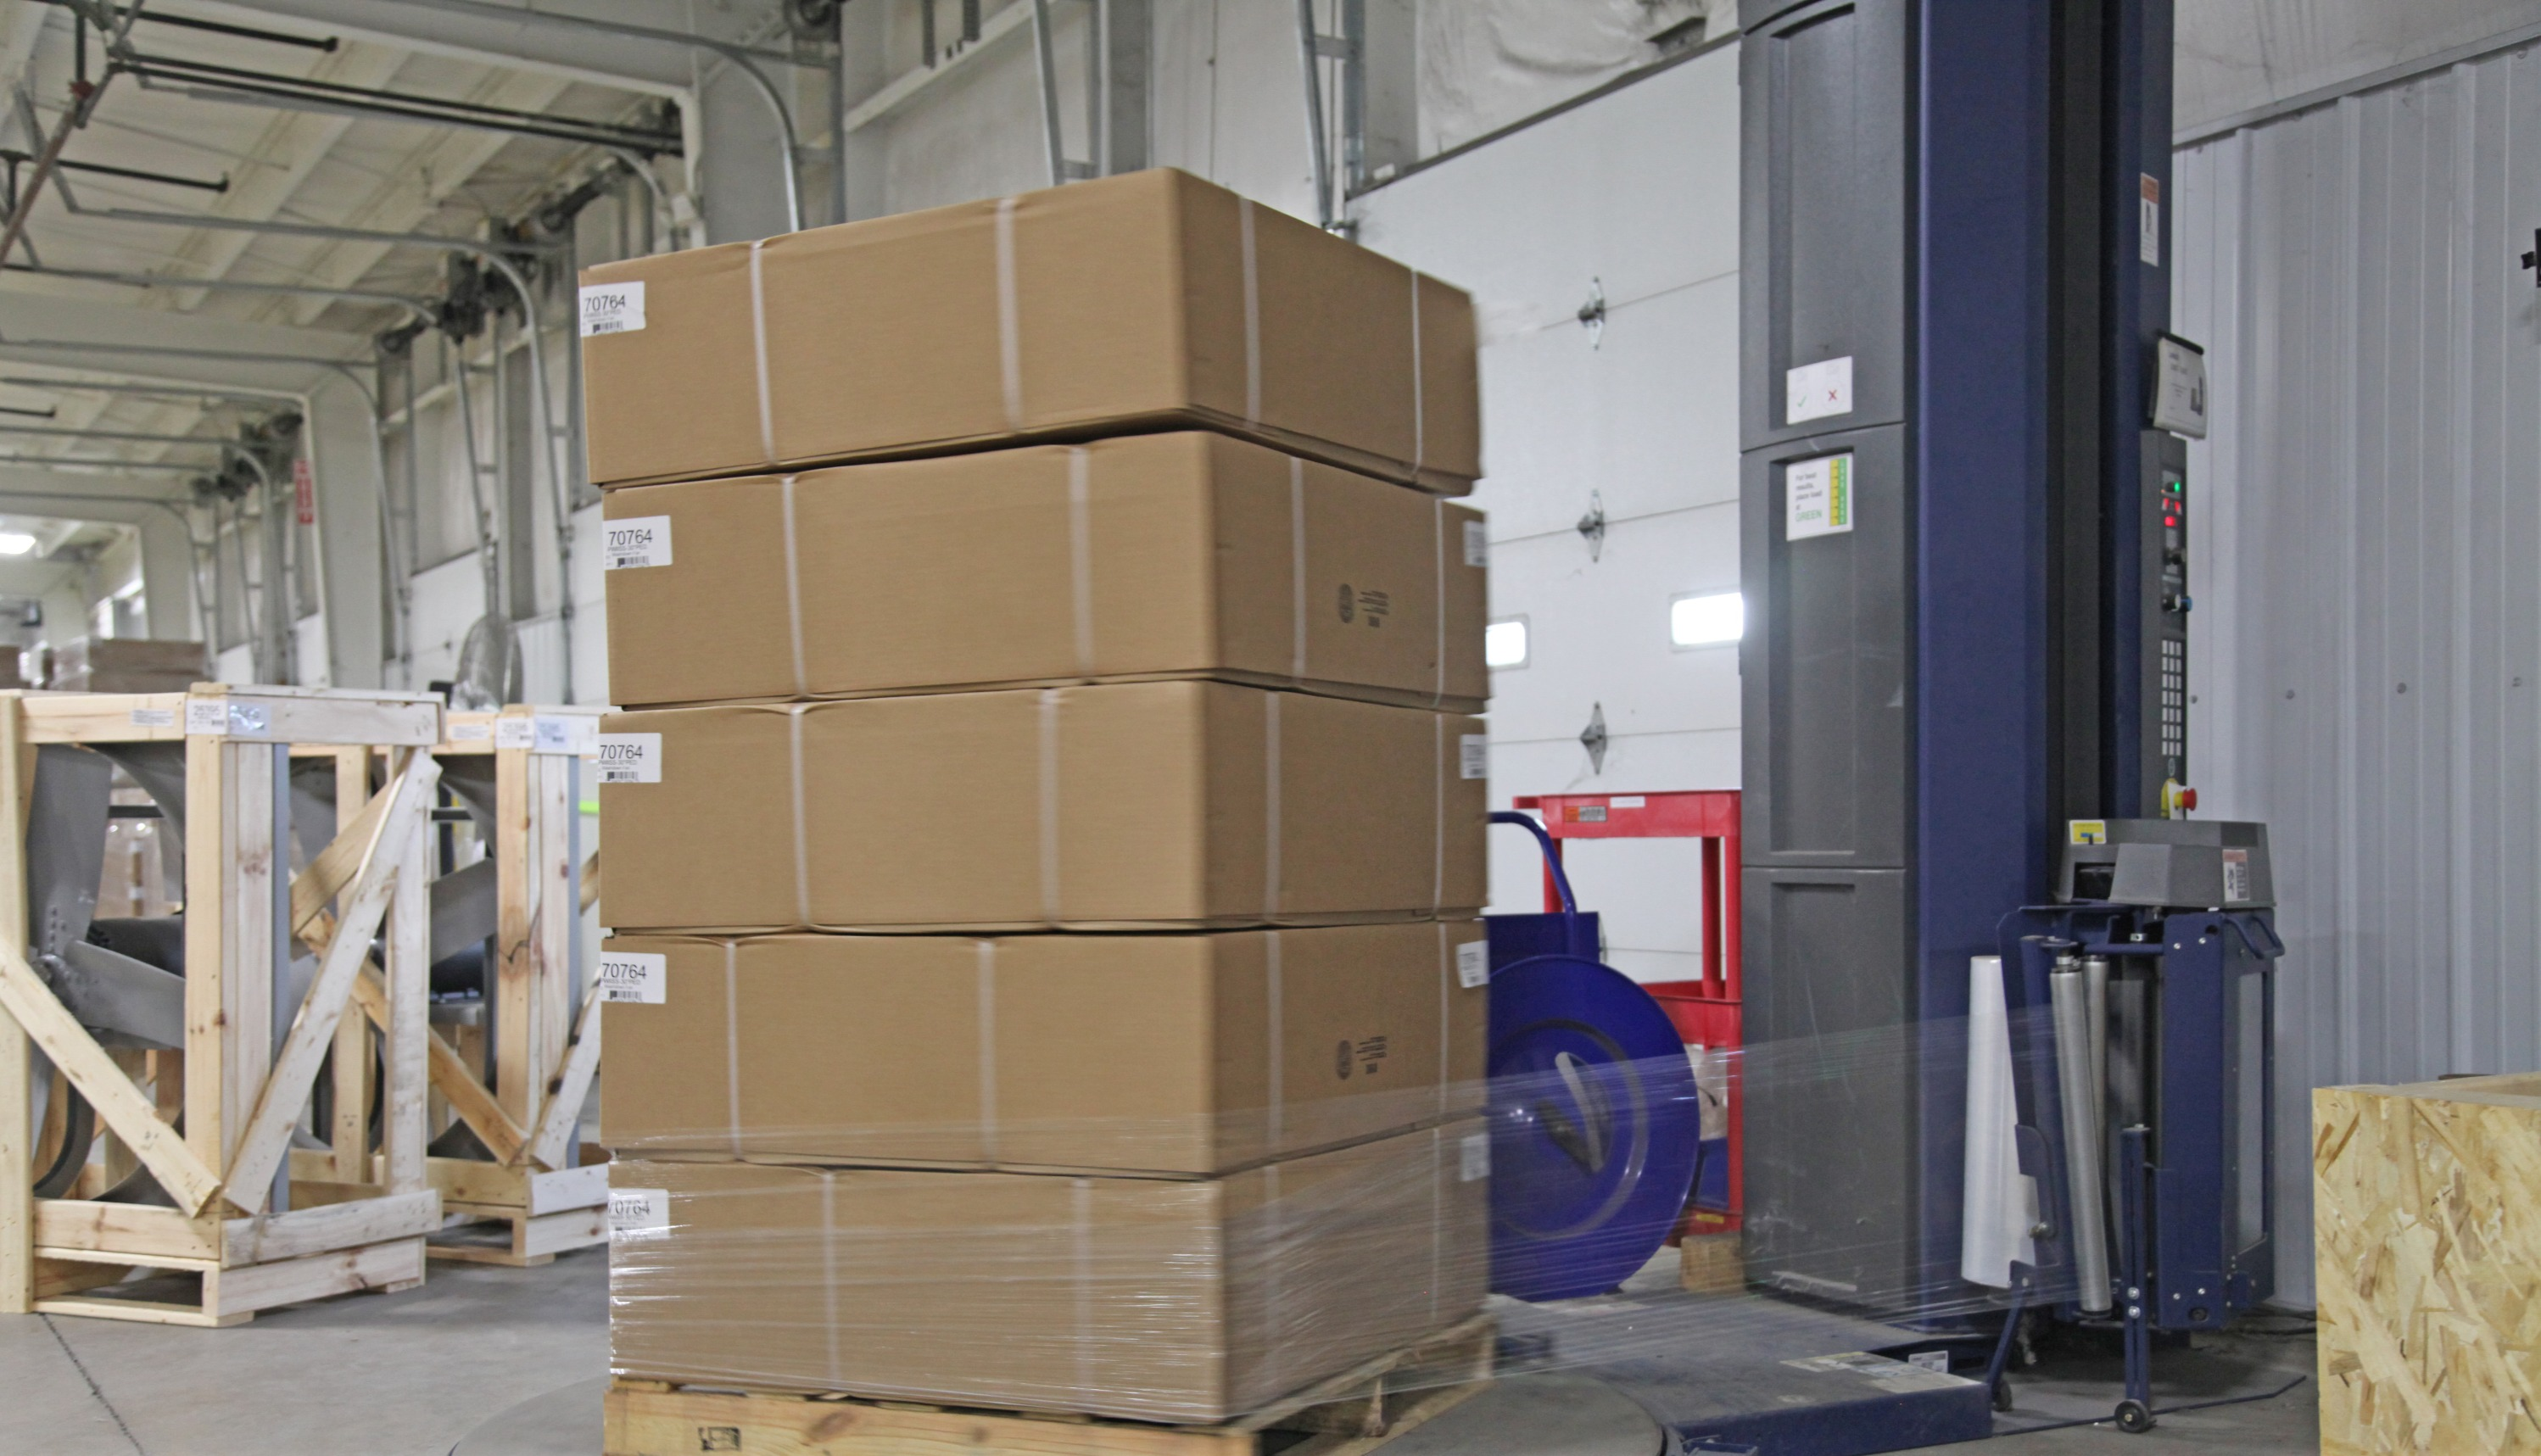 Logistics - Shrink wrapping to prep for outgoing shipment